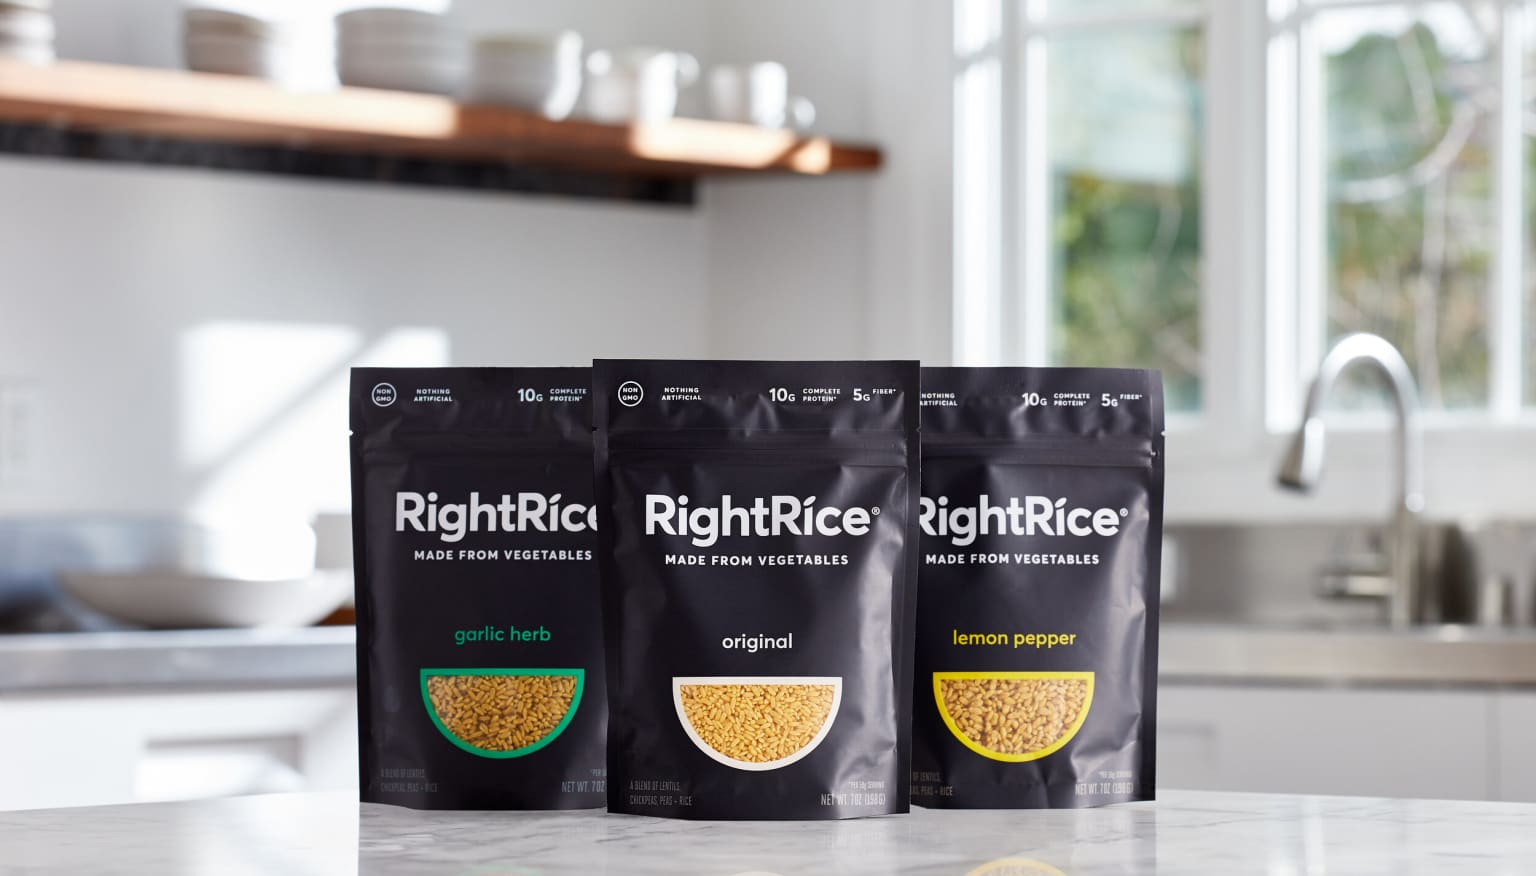 Building the brand for a new type of rice